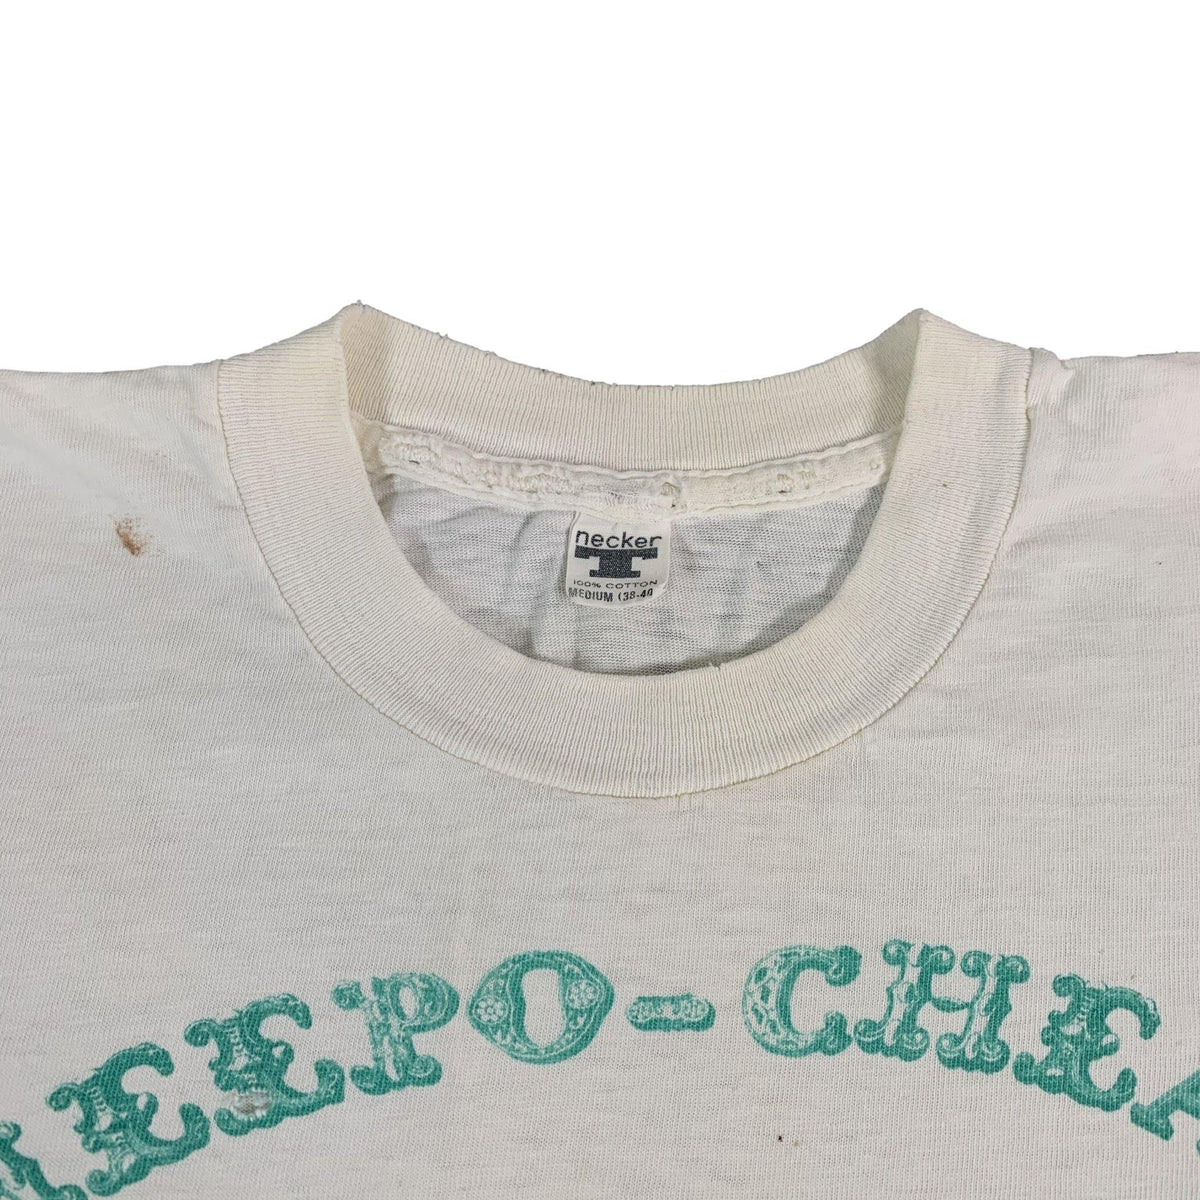 "Vintage Cheepo-Cheapo ""Productions"" T-Shirt - jointcustodydc"